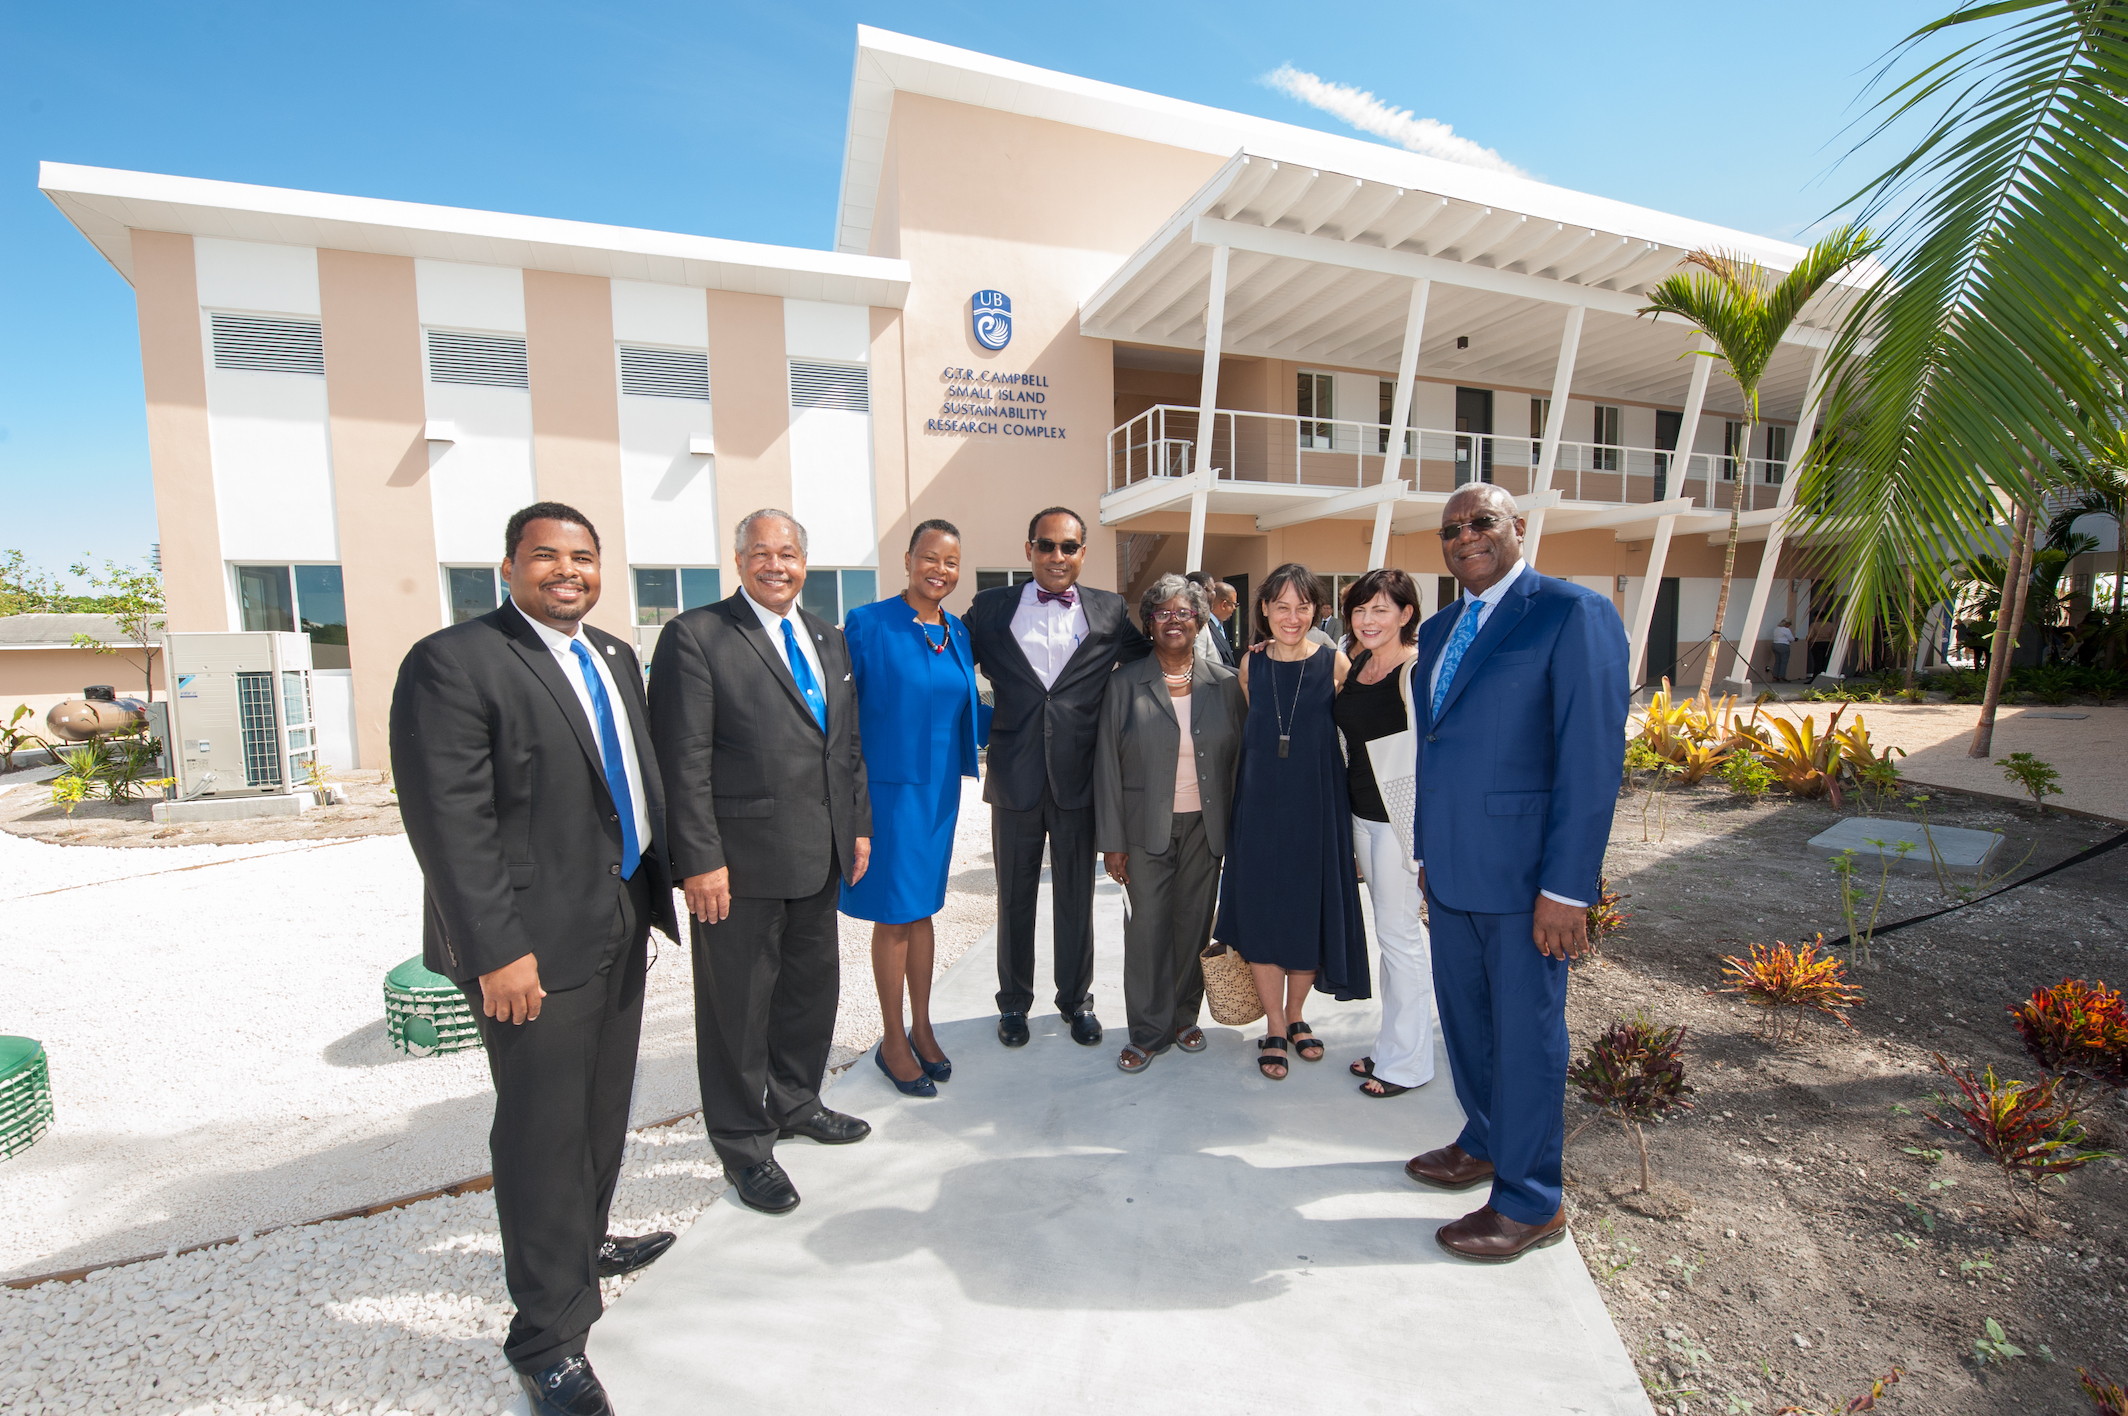 UB opens first Small Island Sustainability Research complex